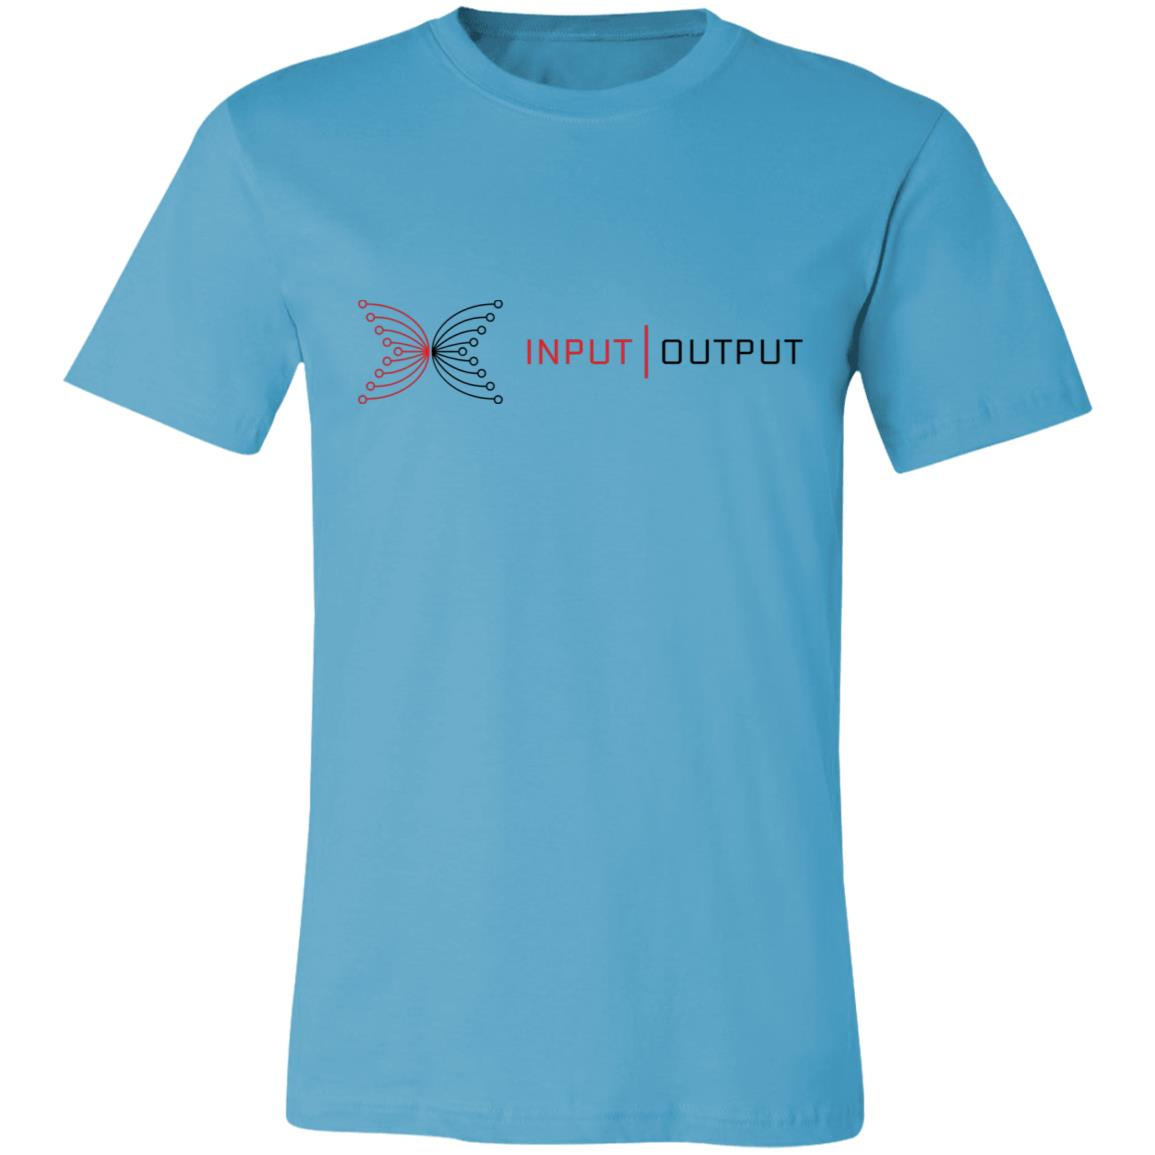 IOG Jersey Short-Sleeve T-Shirt